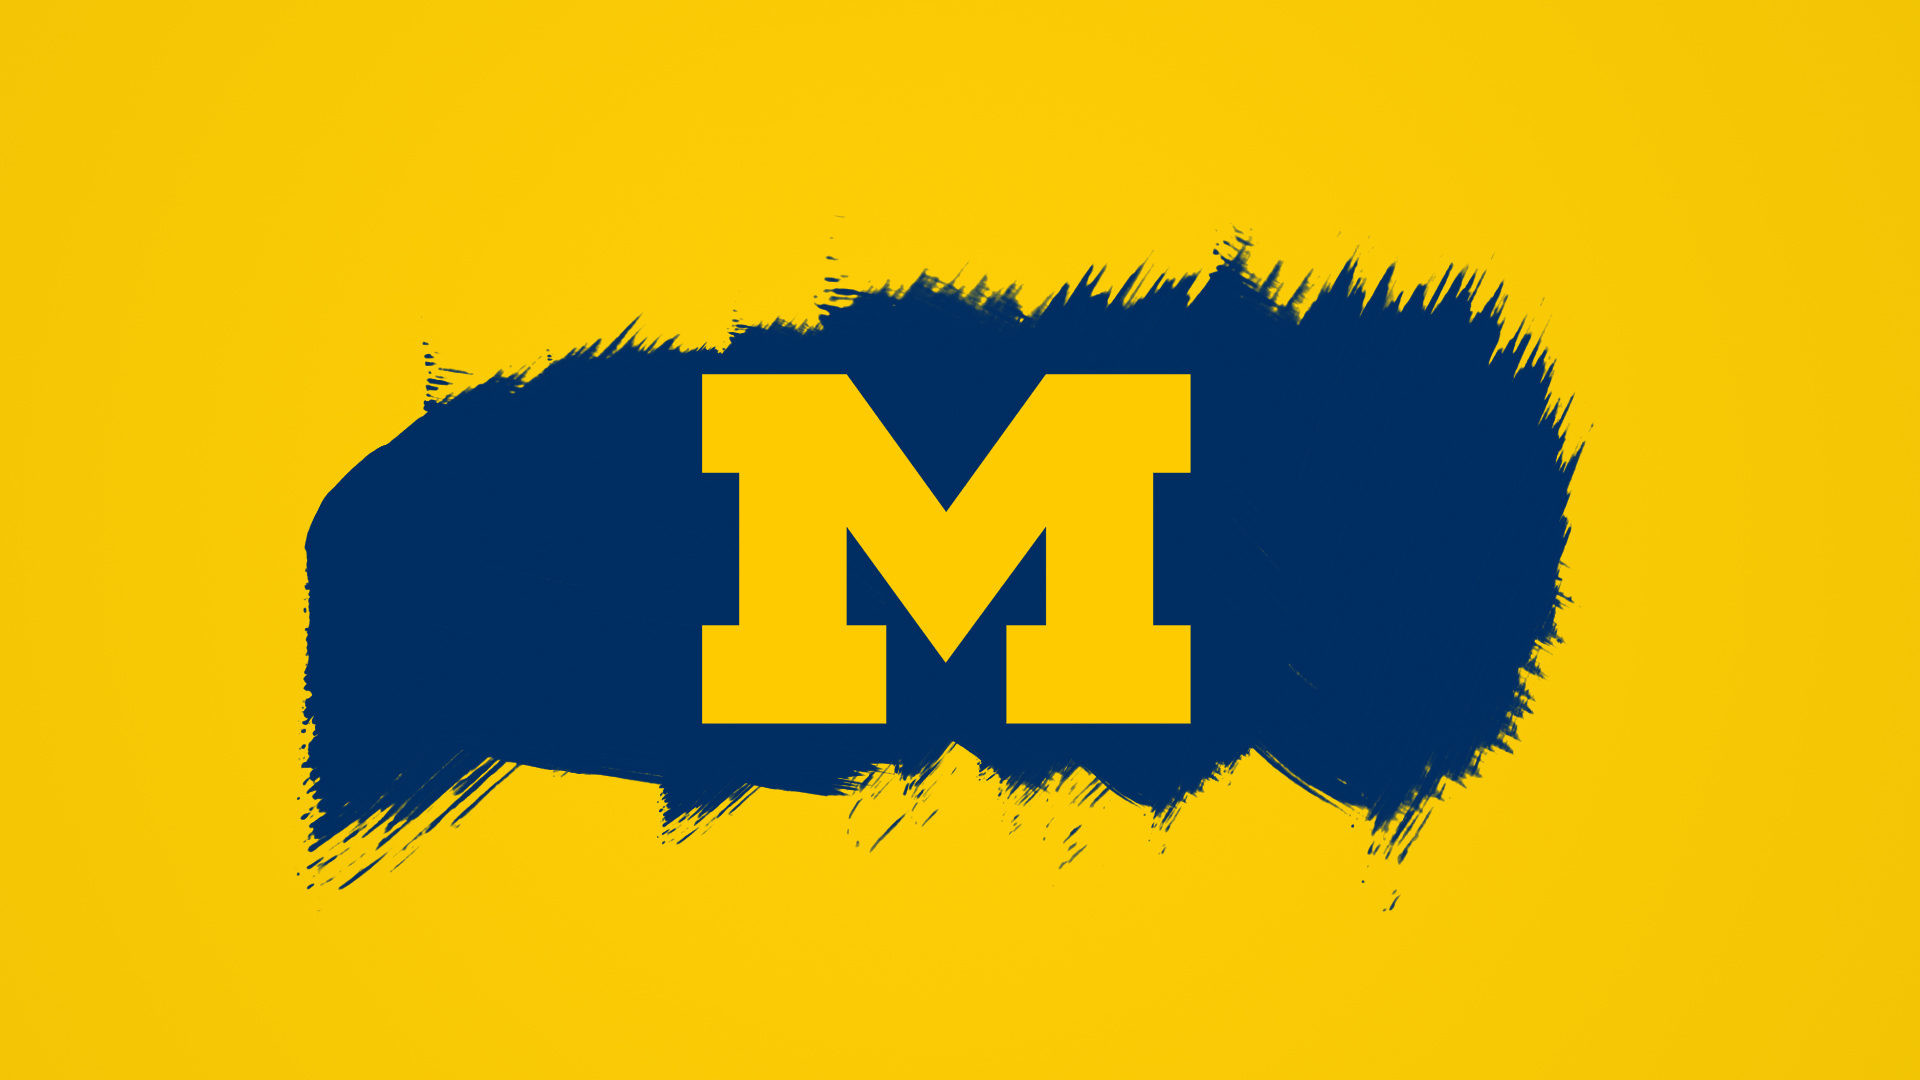 Michigan Wolverines Football Wallpapers Group × Michigan | HD Wallpapers |  Pinterest | Michigan wolverines football and Wallpaper